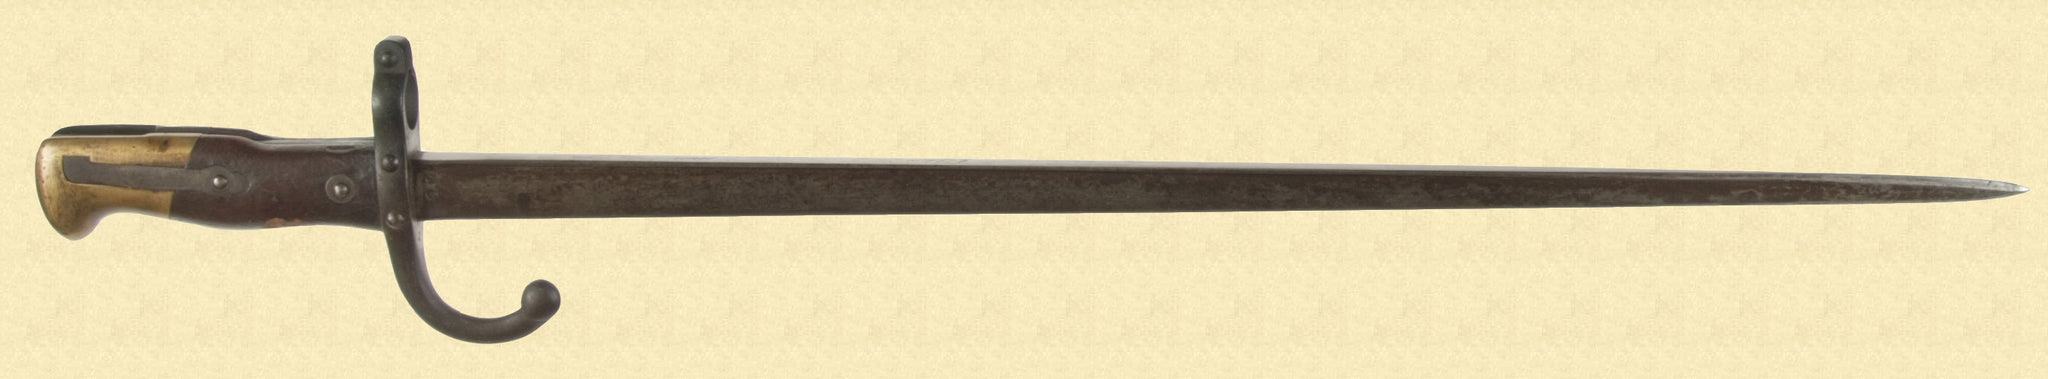 FRENCH M1871 BAYONET